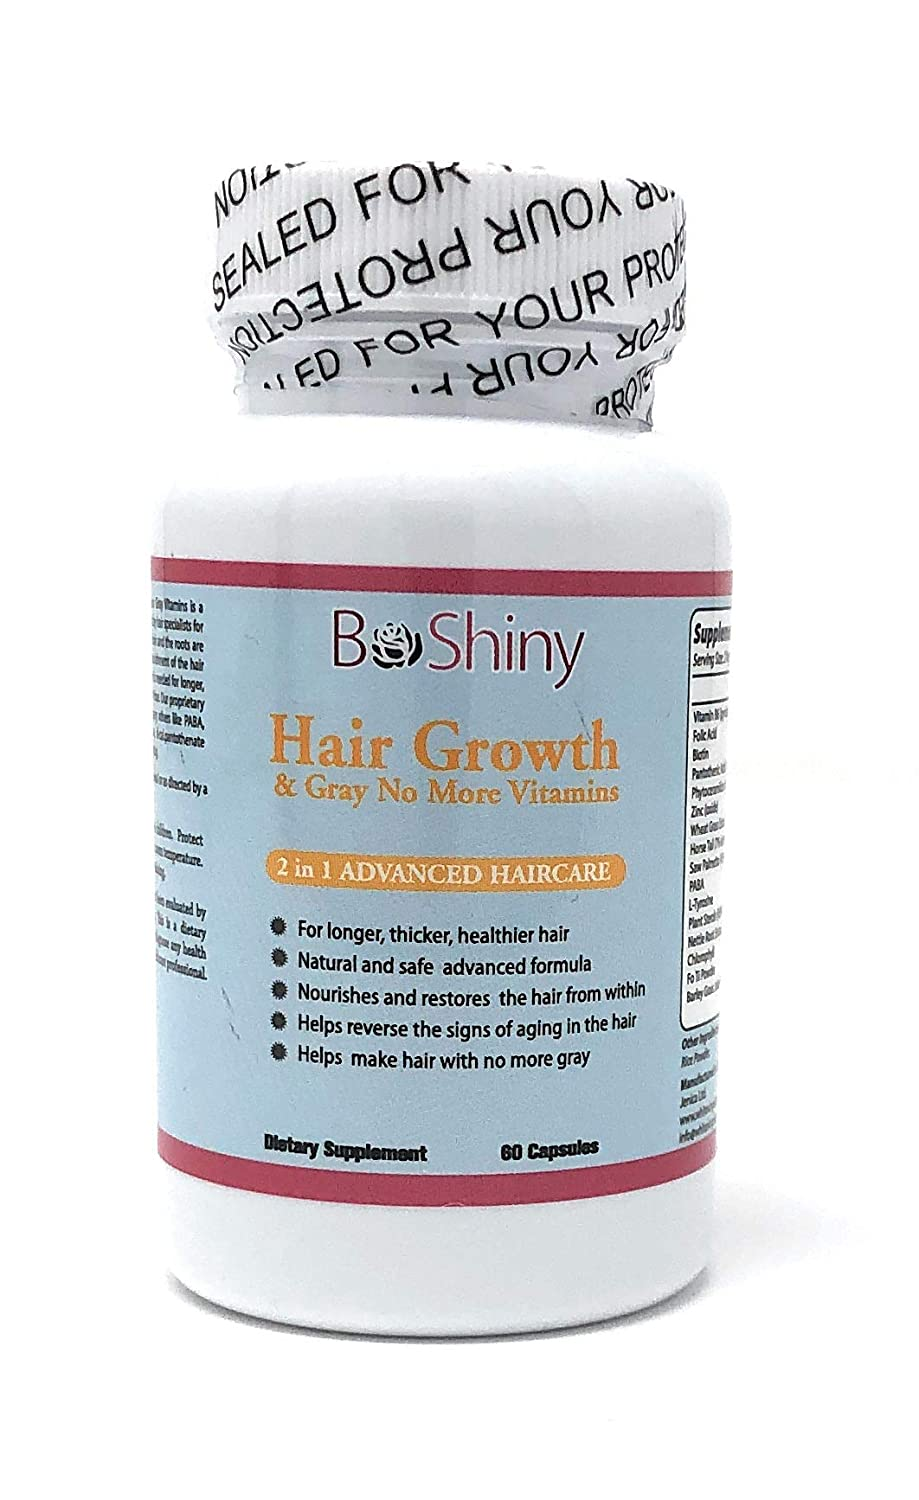 Hair Growth Vitamins with Biotin. Exclusive No More Grey Hair Product for Women for Longer, Stronger, Silky & Soft Hair. Gluten Free Non-GMO Vitamins for Hair Growth Made in USA